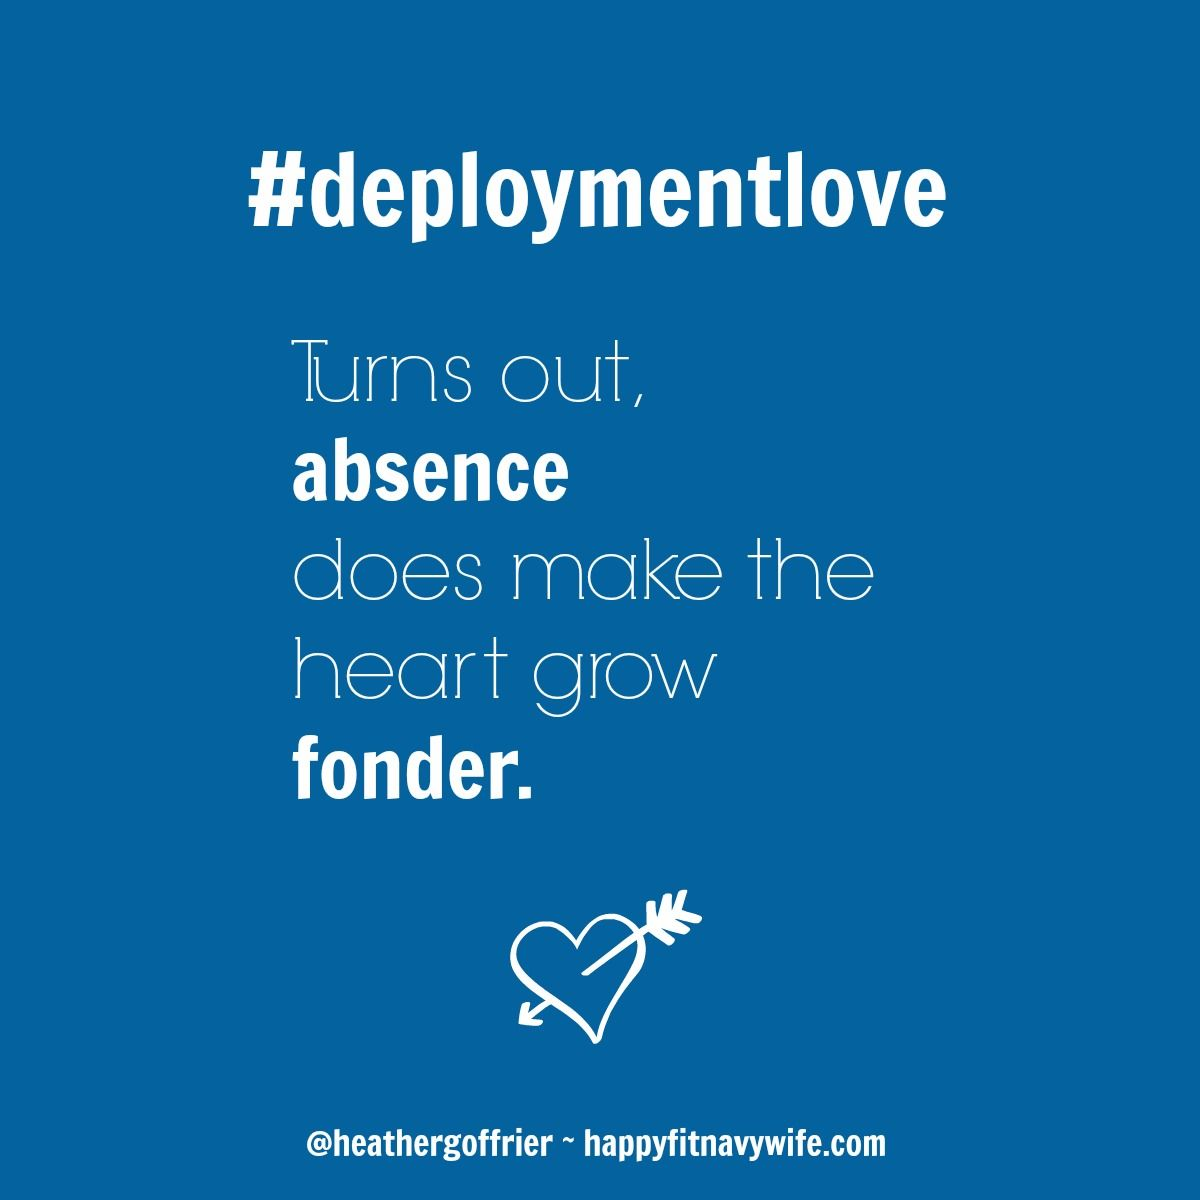 Does absence make the heart grow fonder